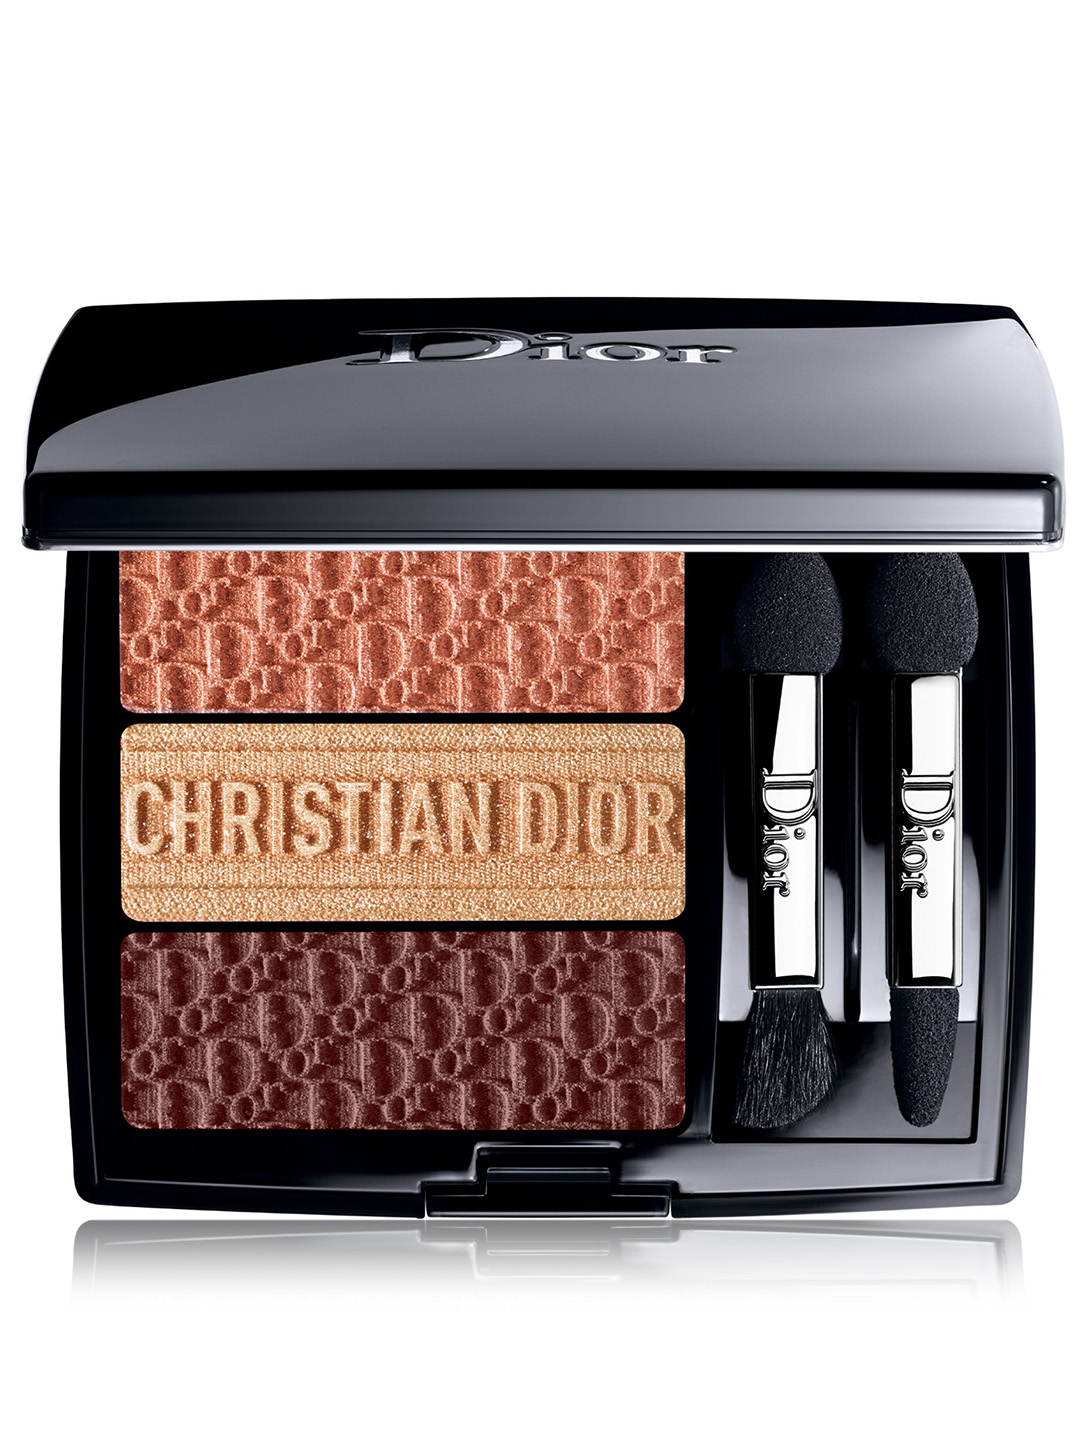 DIOR 3 Couleurs Tri(O)blique Eyeshadow Palette - Limited Edition Beauty Orange